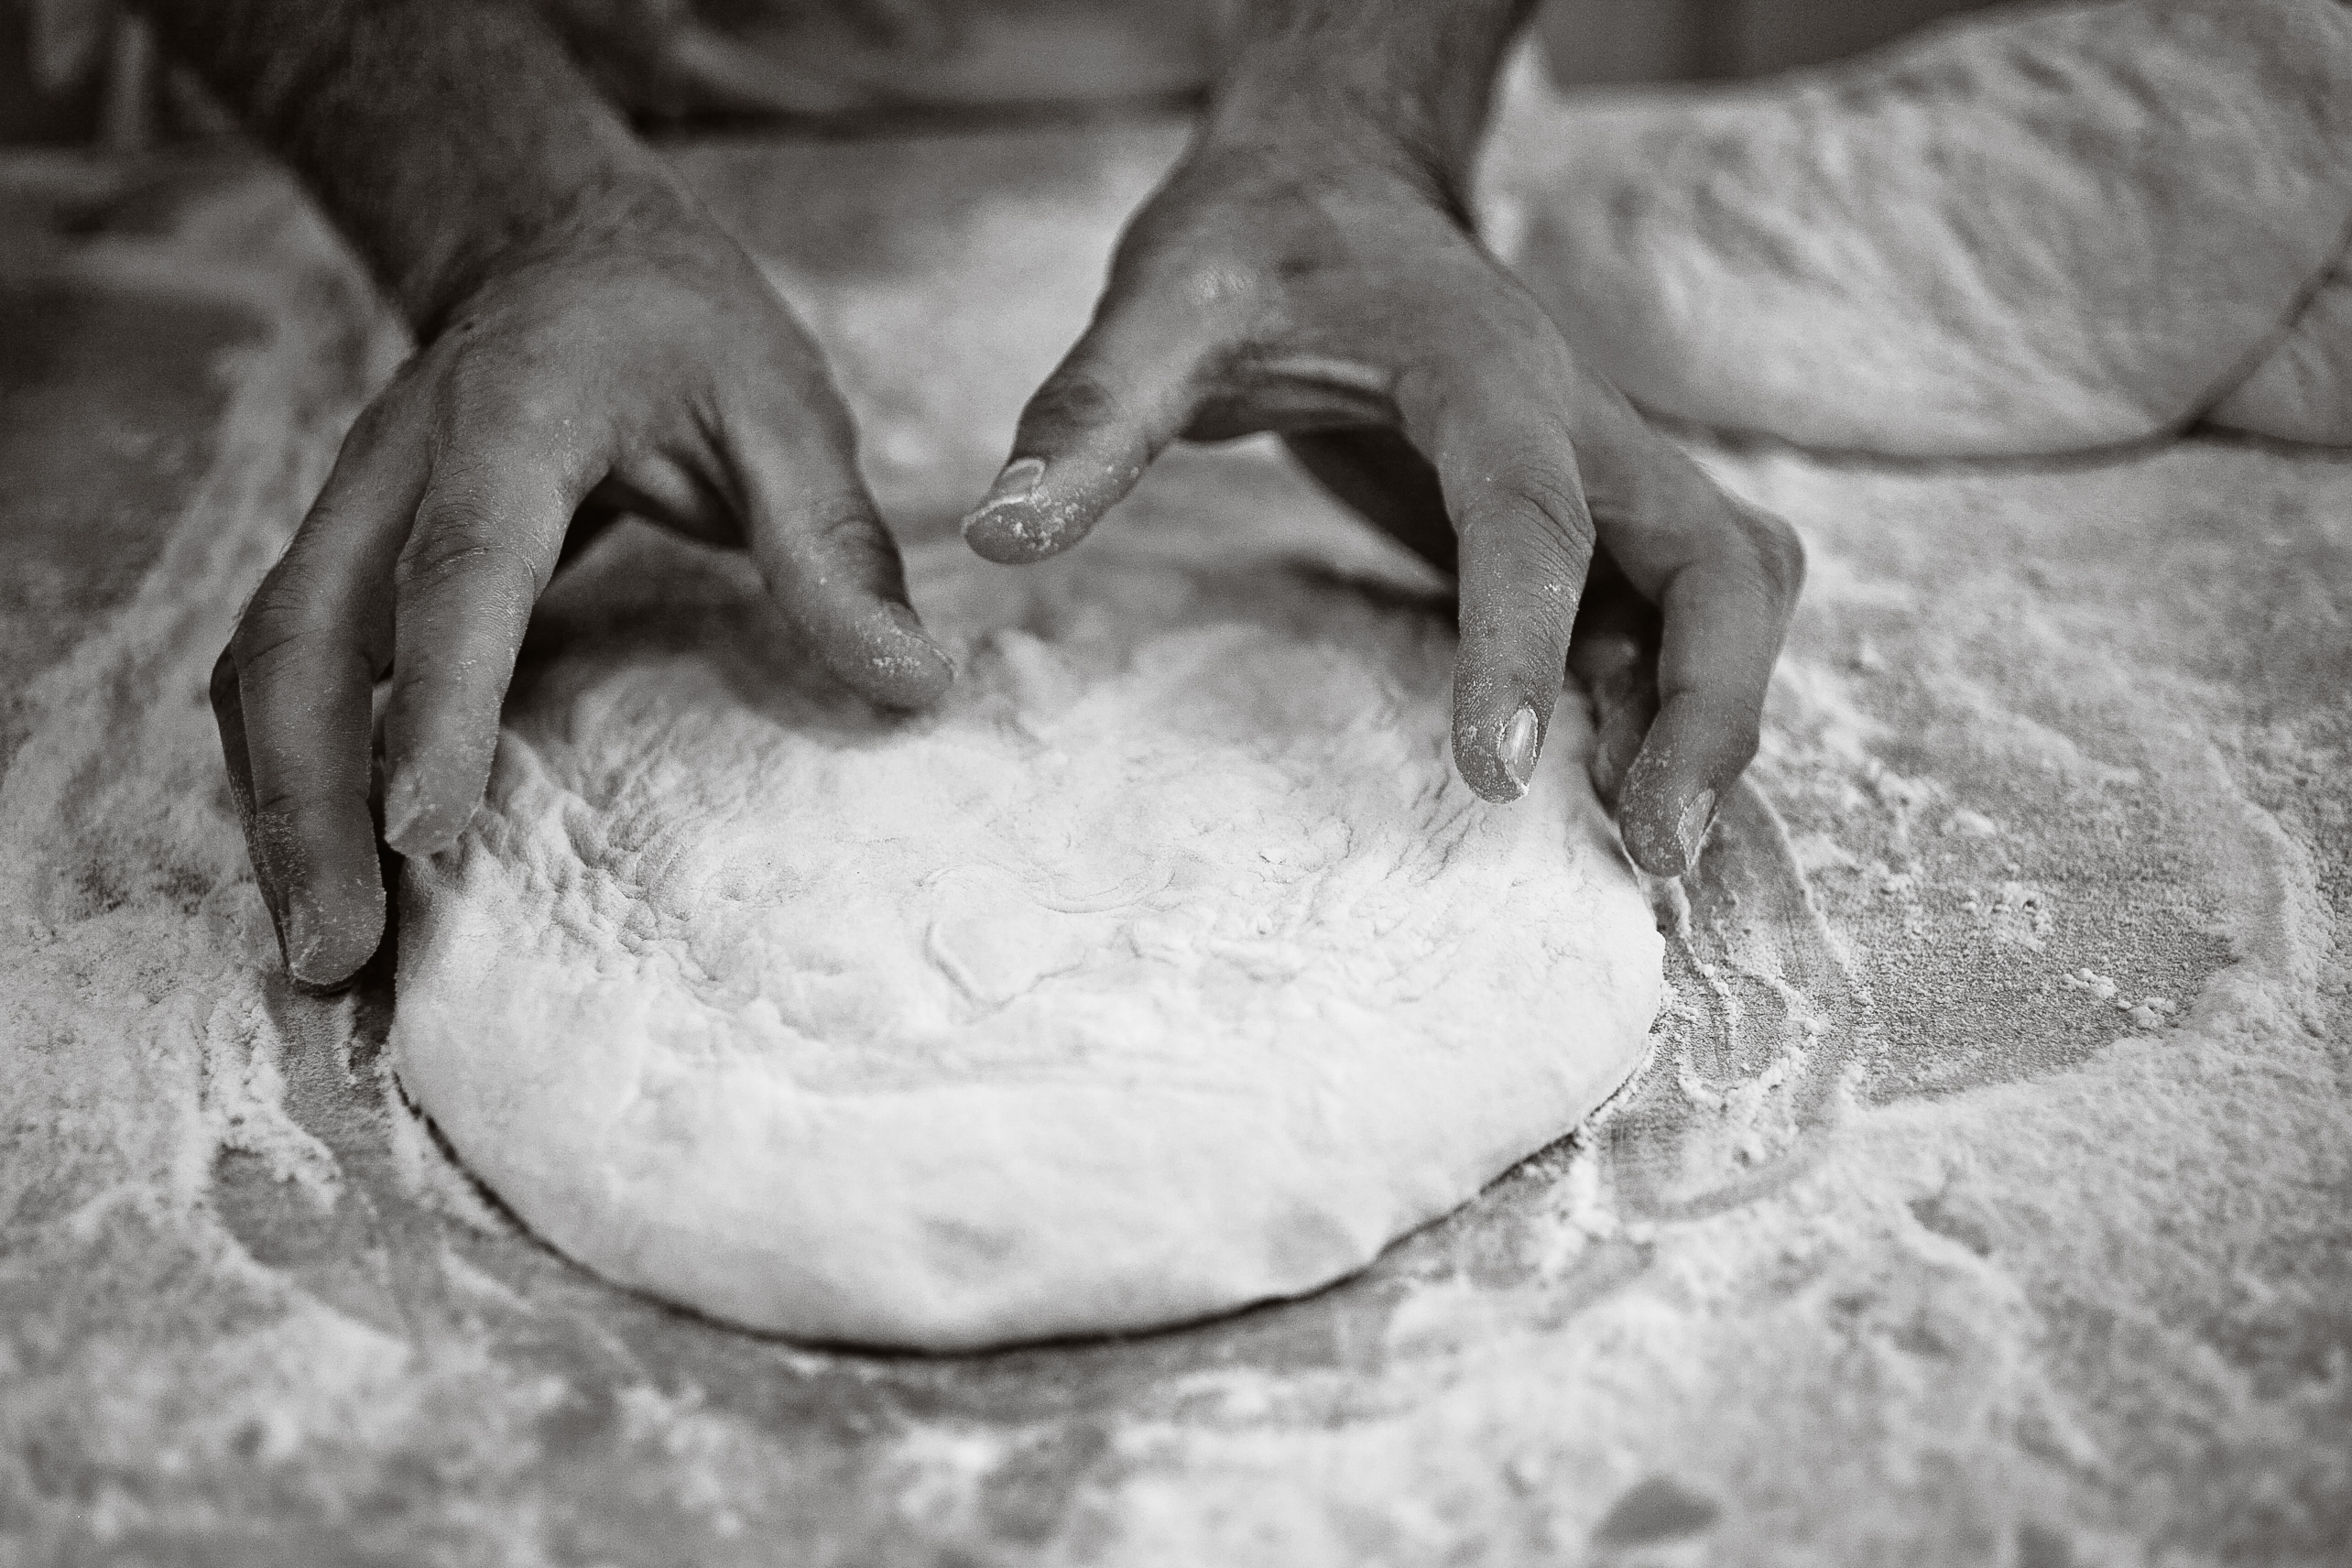 photo of hands kneading pizza dough